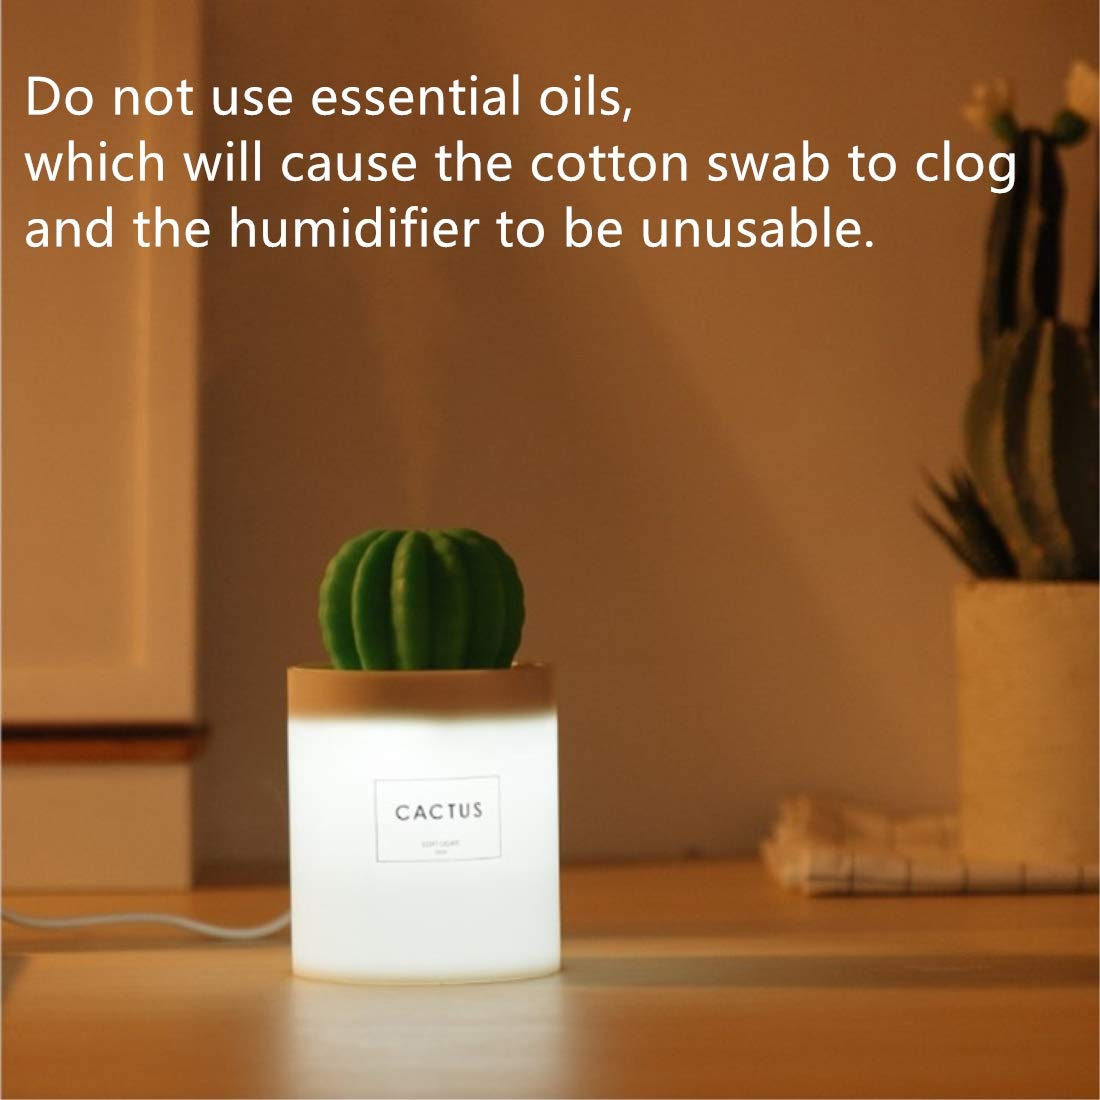 for Bedroom WEIFA Mini Humidifier with LED Light Mini Cool Mist Humidifier USB Portable Air Humidifier with Auto Shut-Off Home Yoga Office Spa Desktop Baby Room Reindeer humidifier